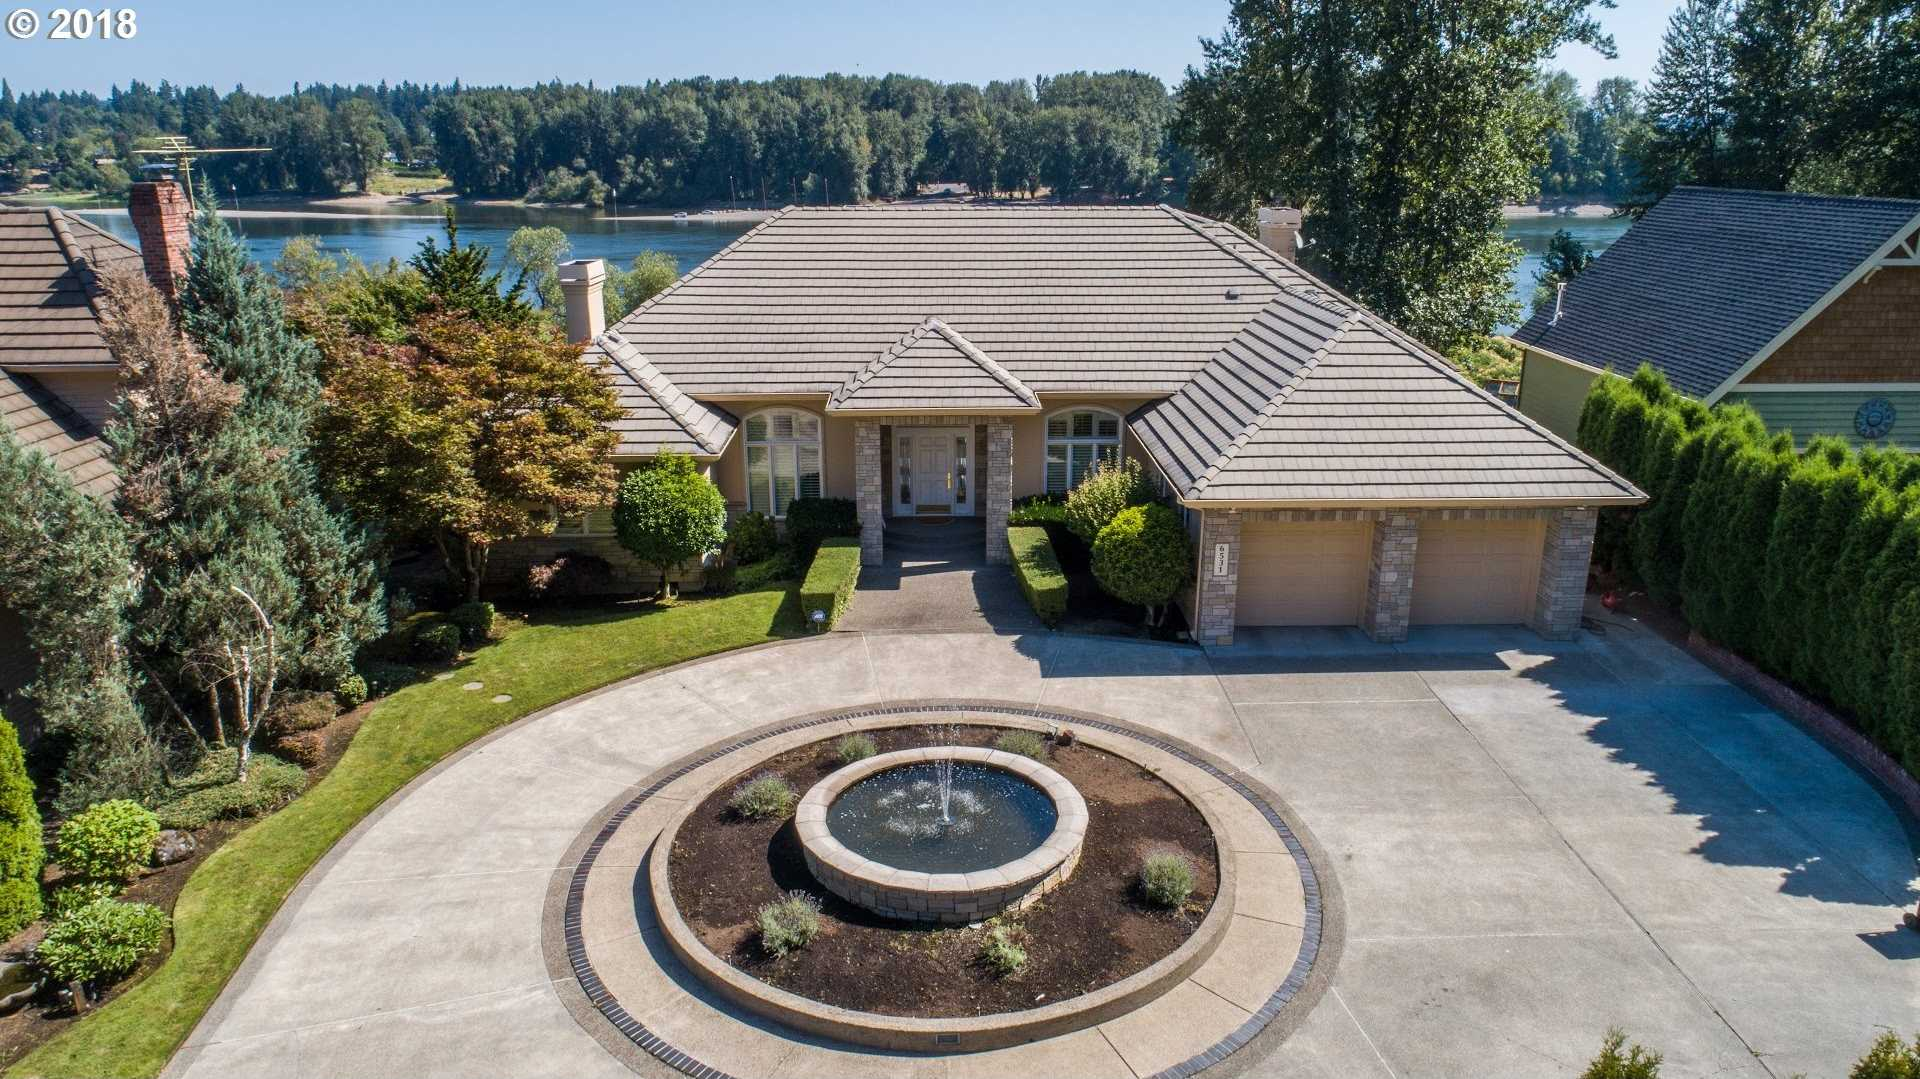 $1,695,000 - 4Br/5Ba -  for Sale in West Linn